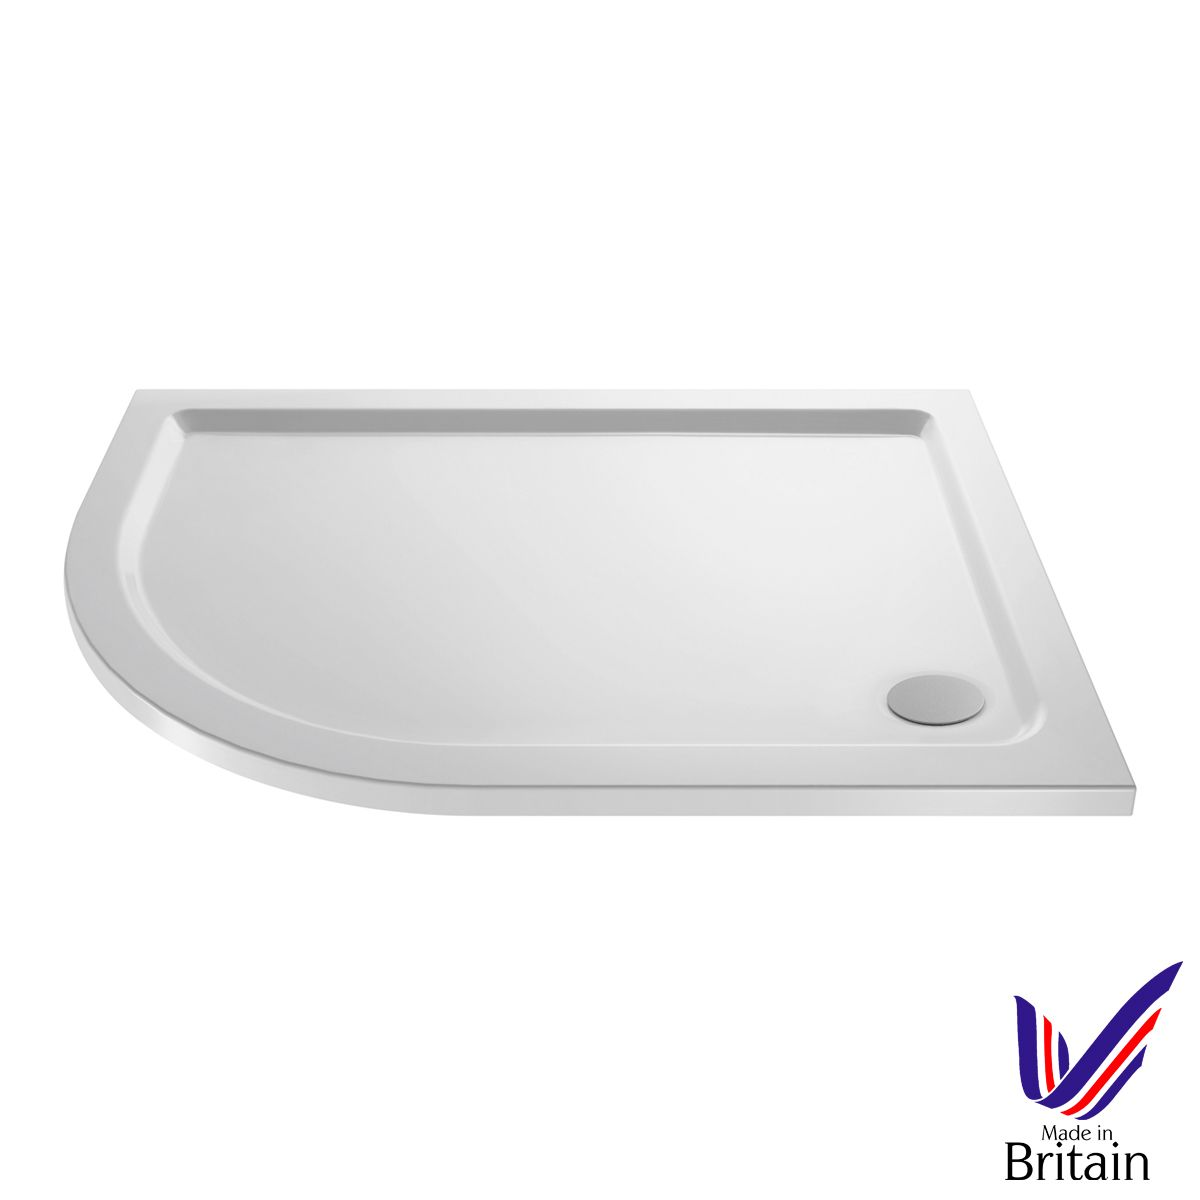 1000 x 800 Shower Tray Offset Quadrant Low Profile Left Hand by Pearlstone